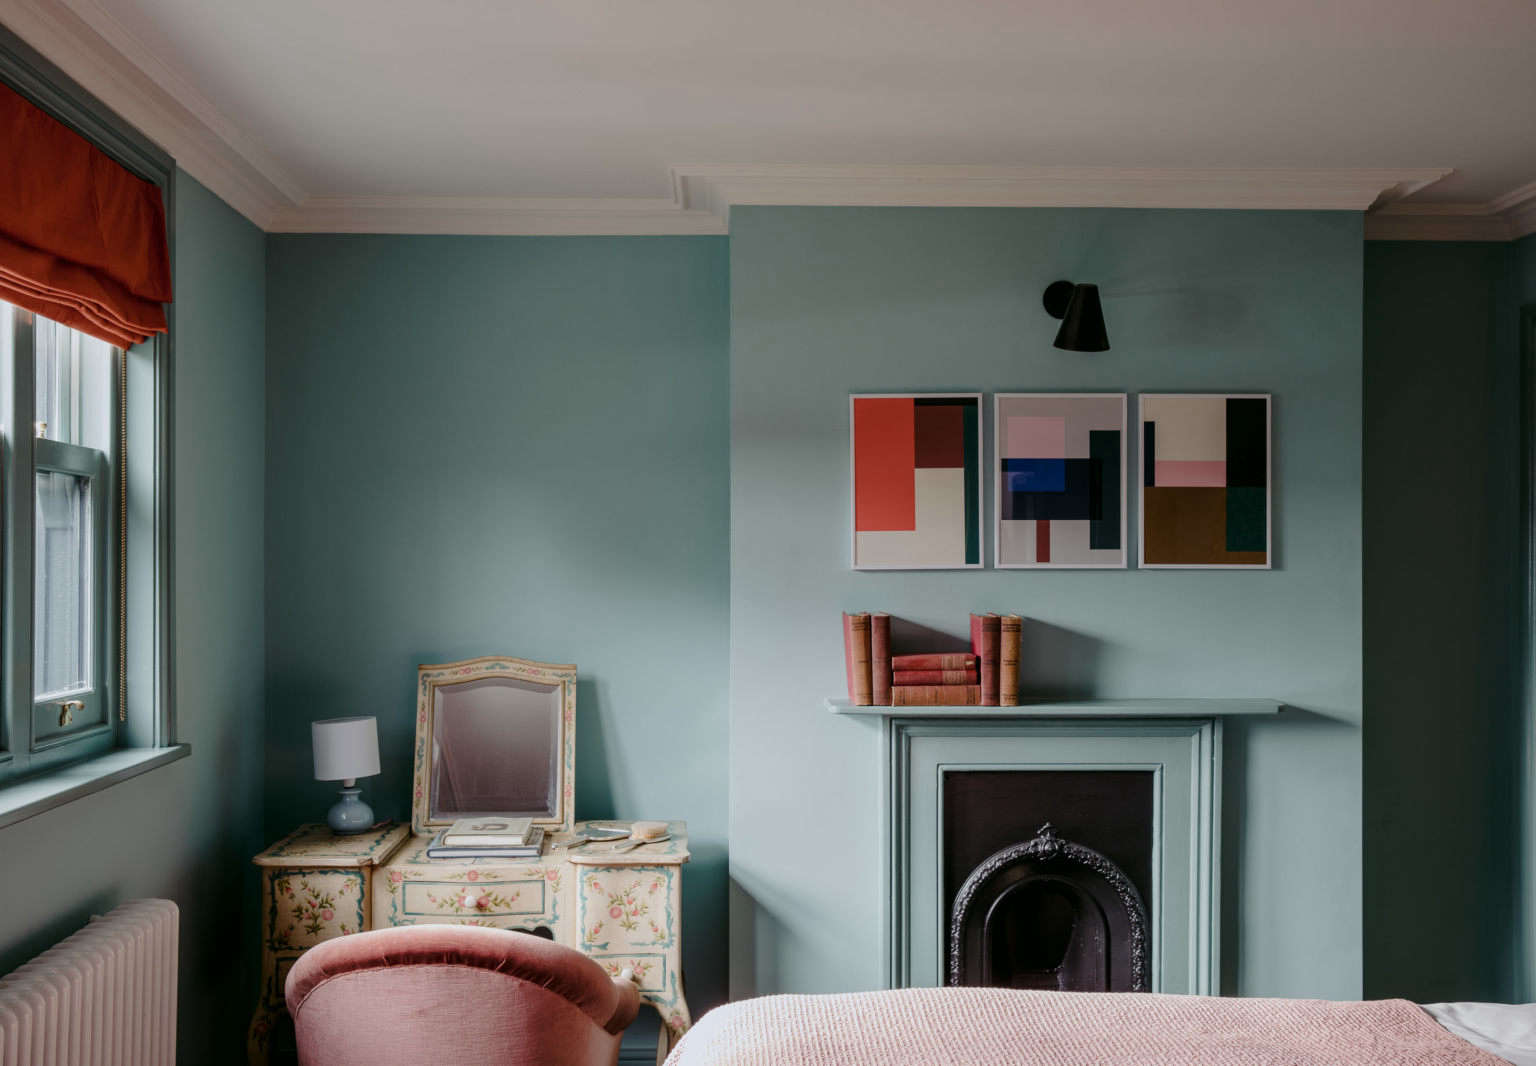 The Rose: A Singular Seaside Inn on the English Coast, Color Edition